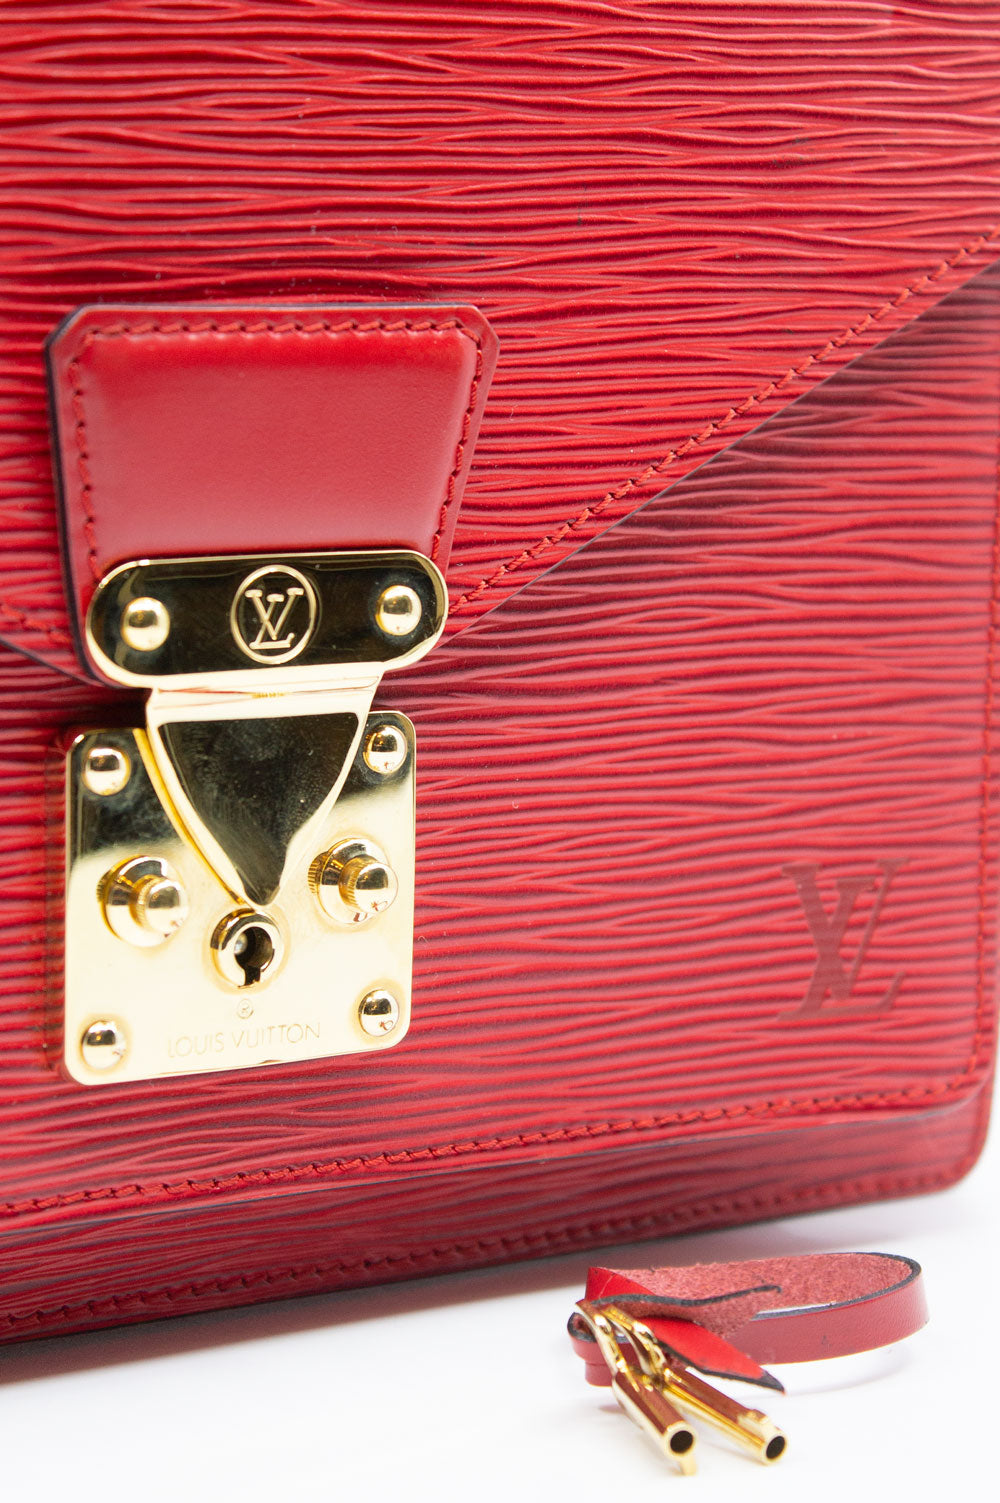 LOUIS VUITTON Monceau Bag Red